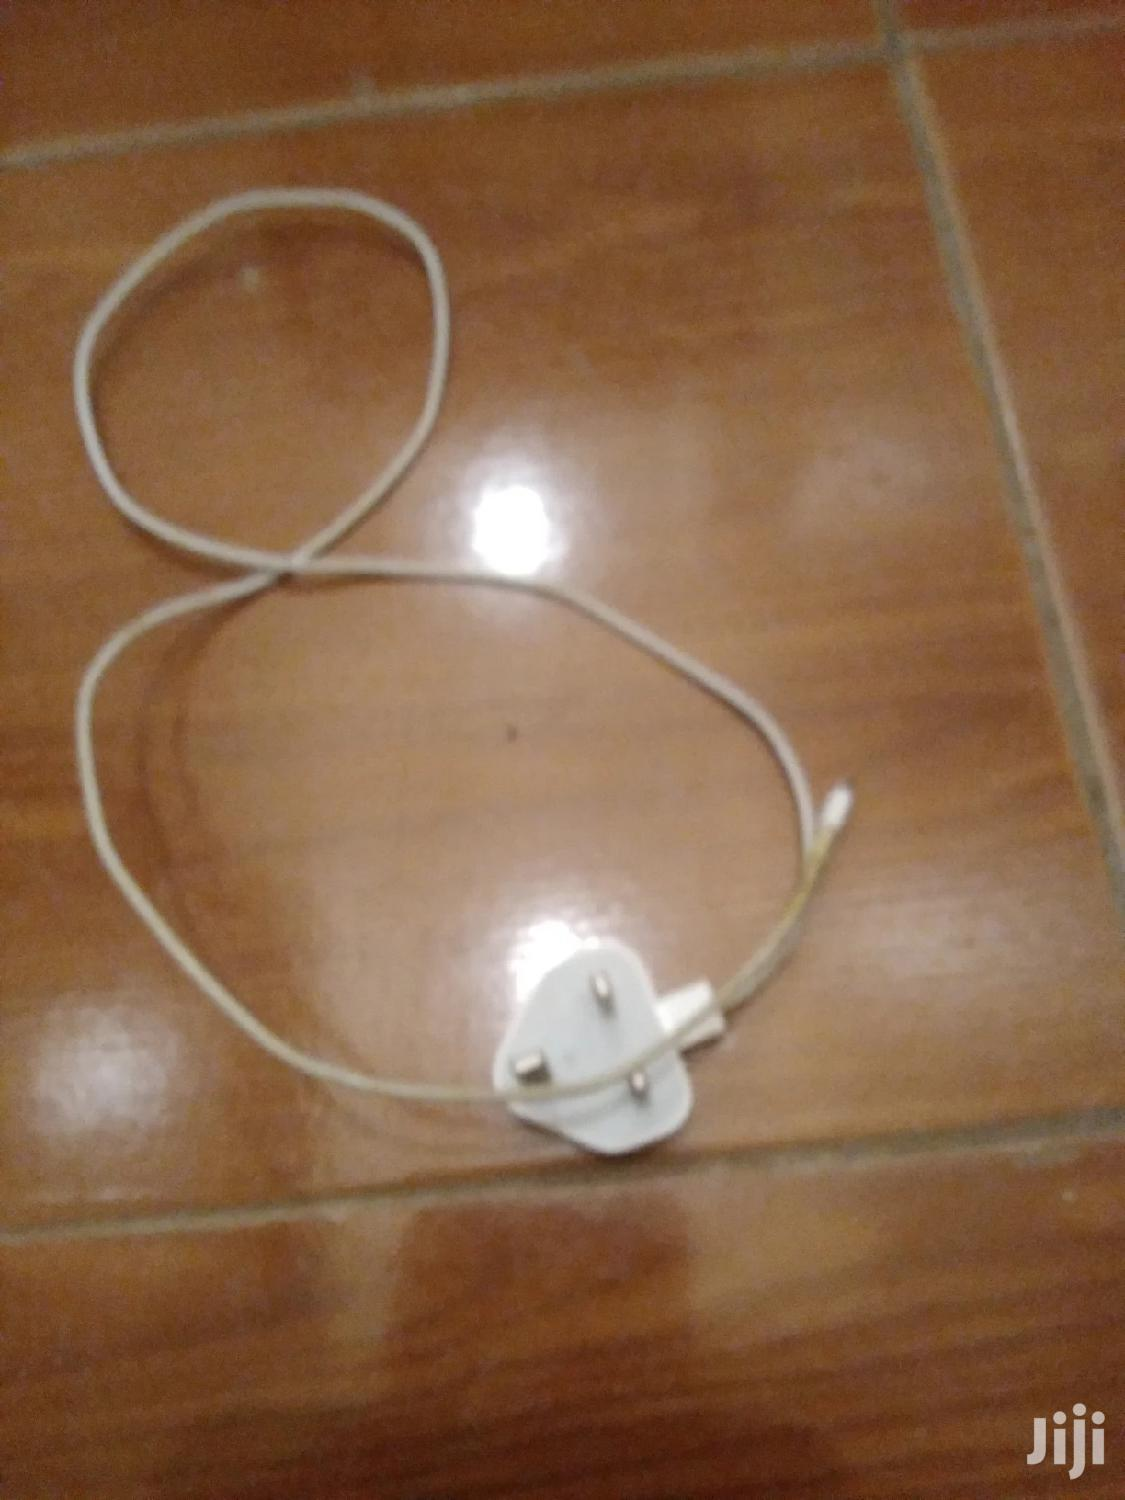 Archive: iPhone Charger